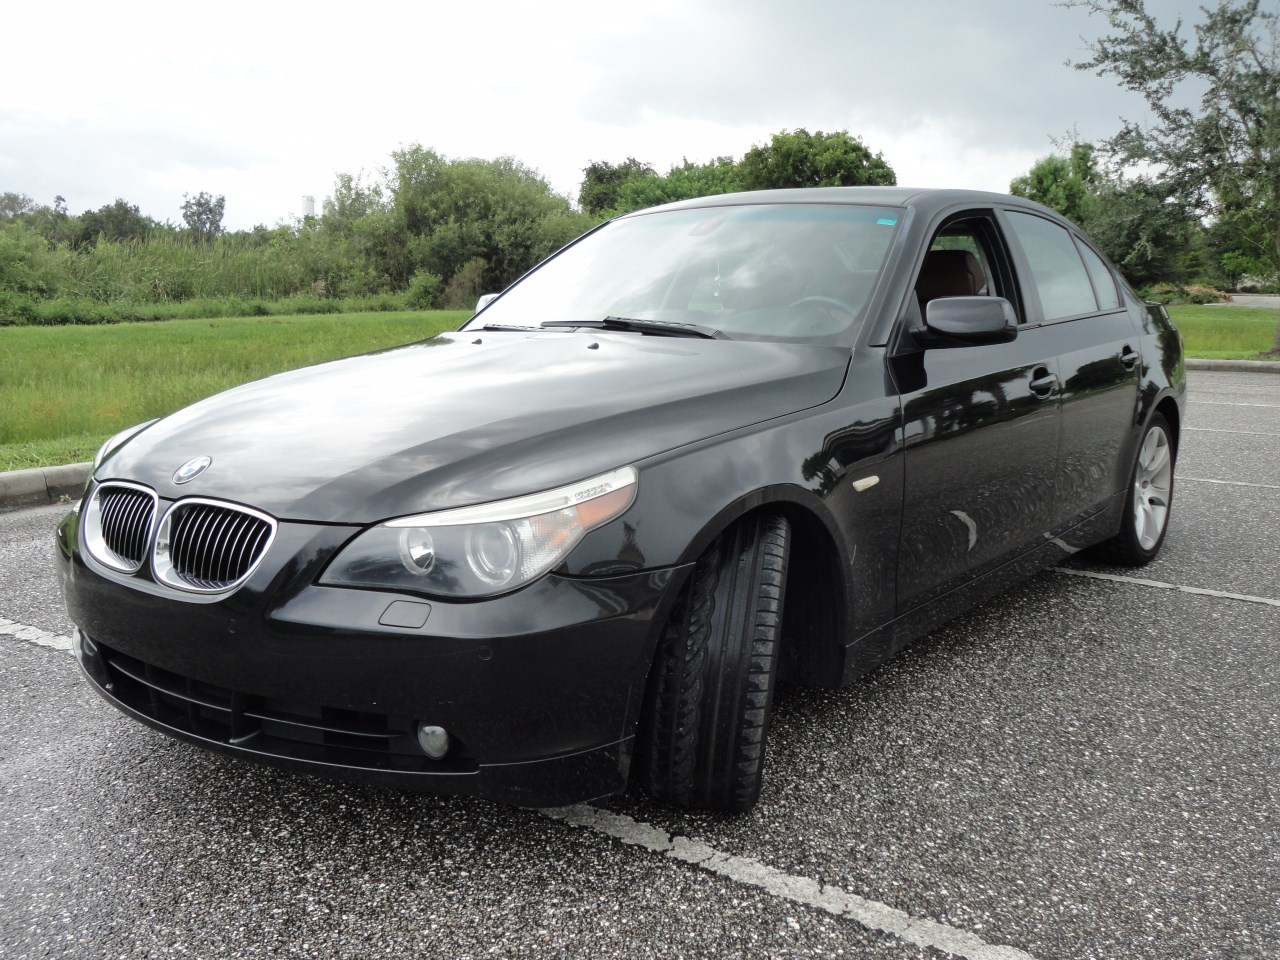 2005 Bmw 5 Series - Pictures